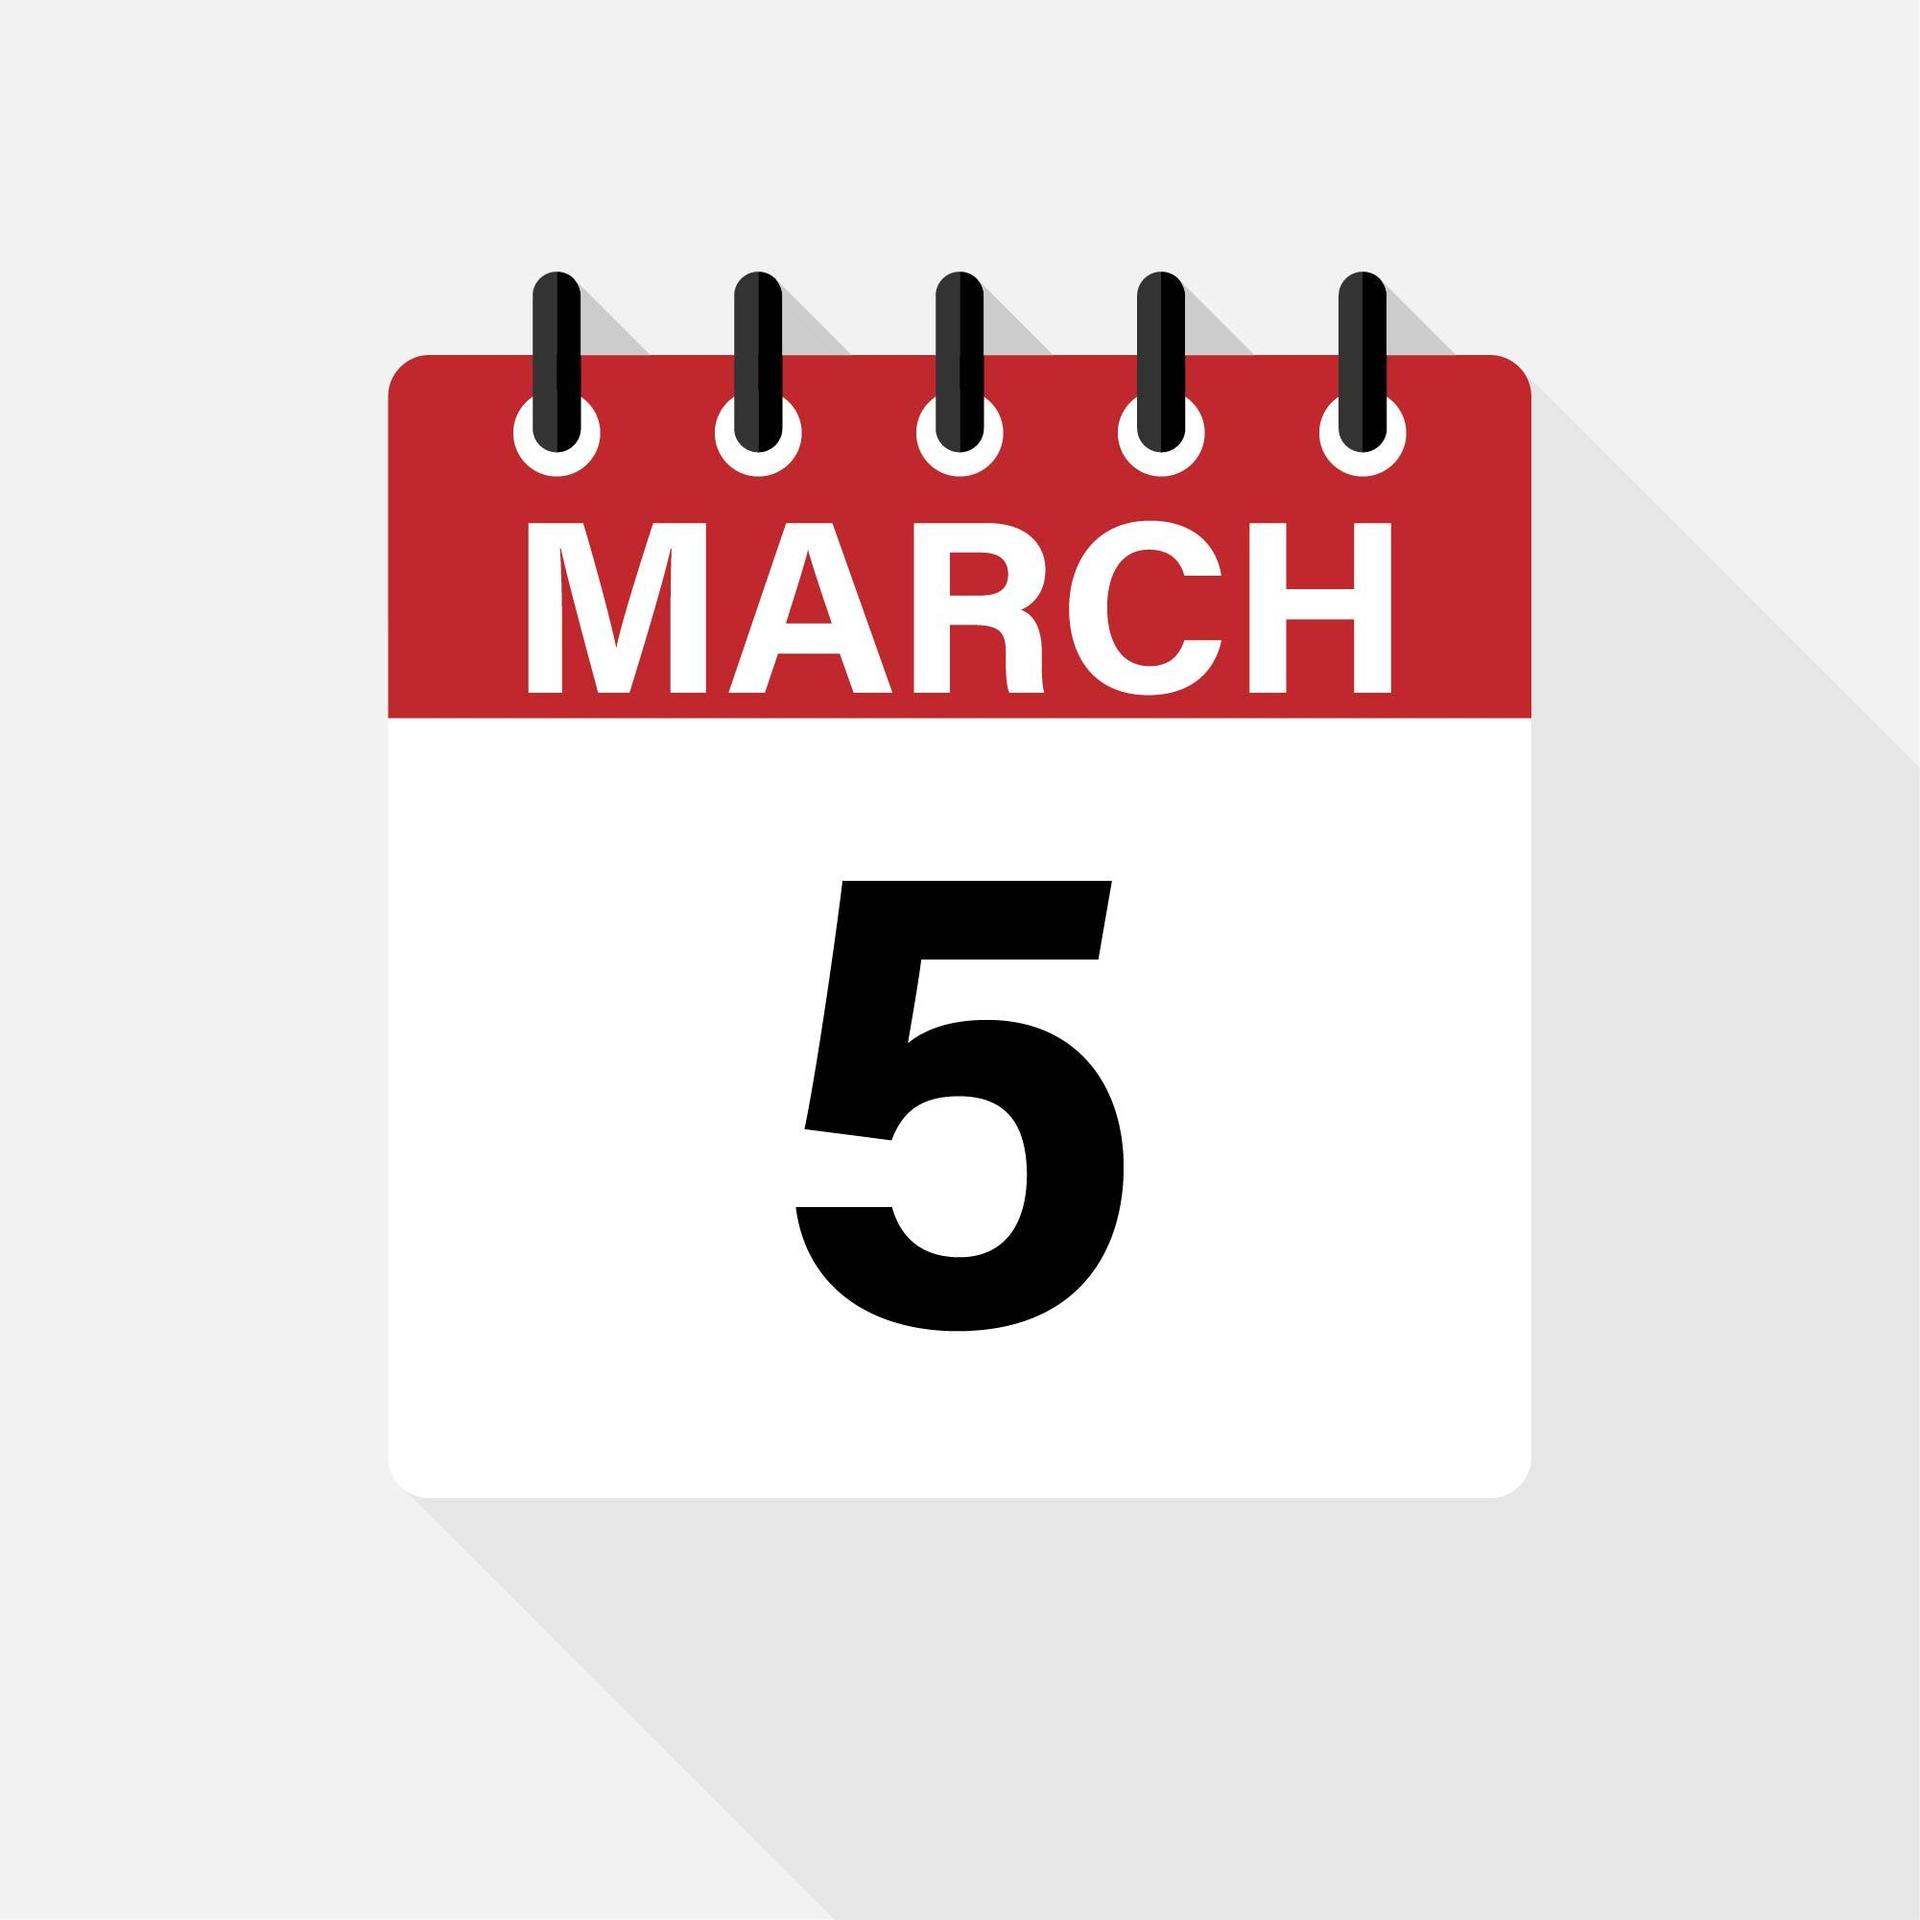 calendar icon showing march 5